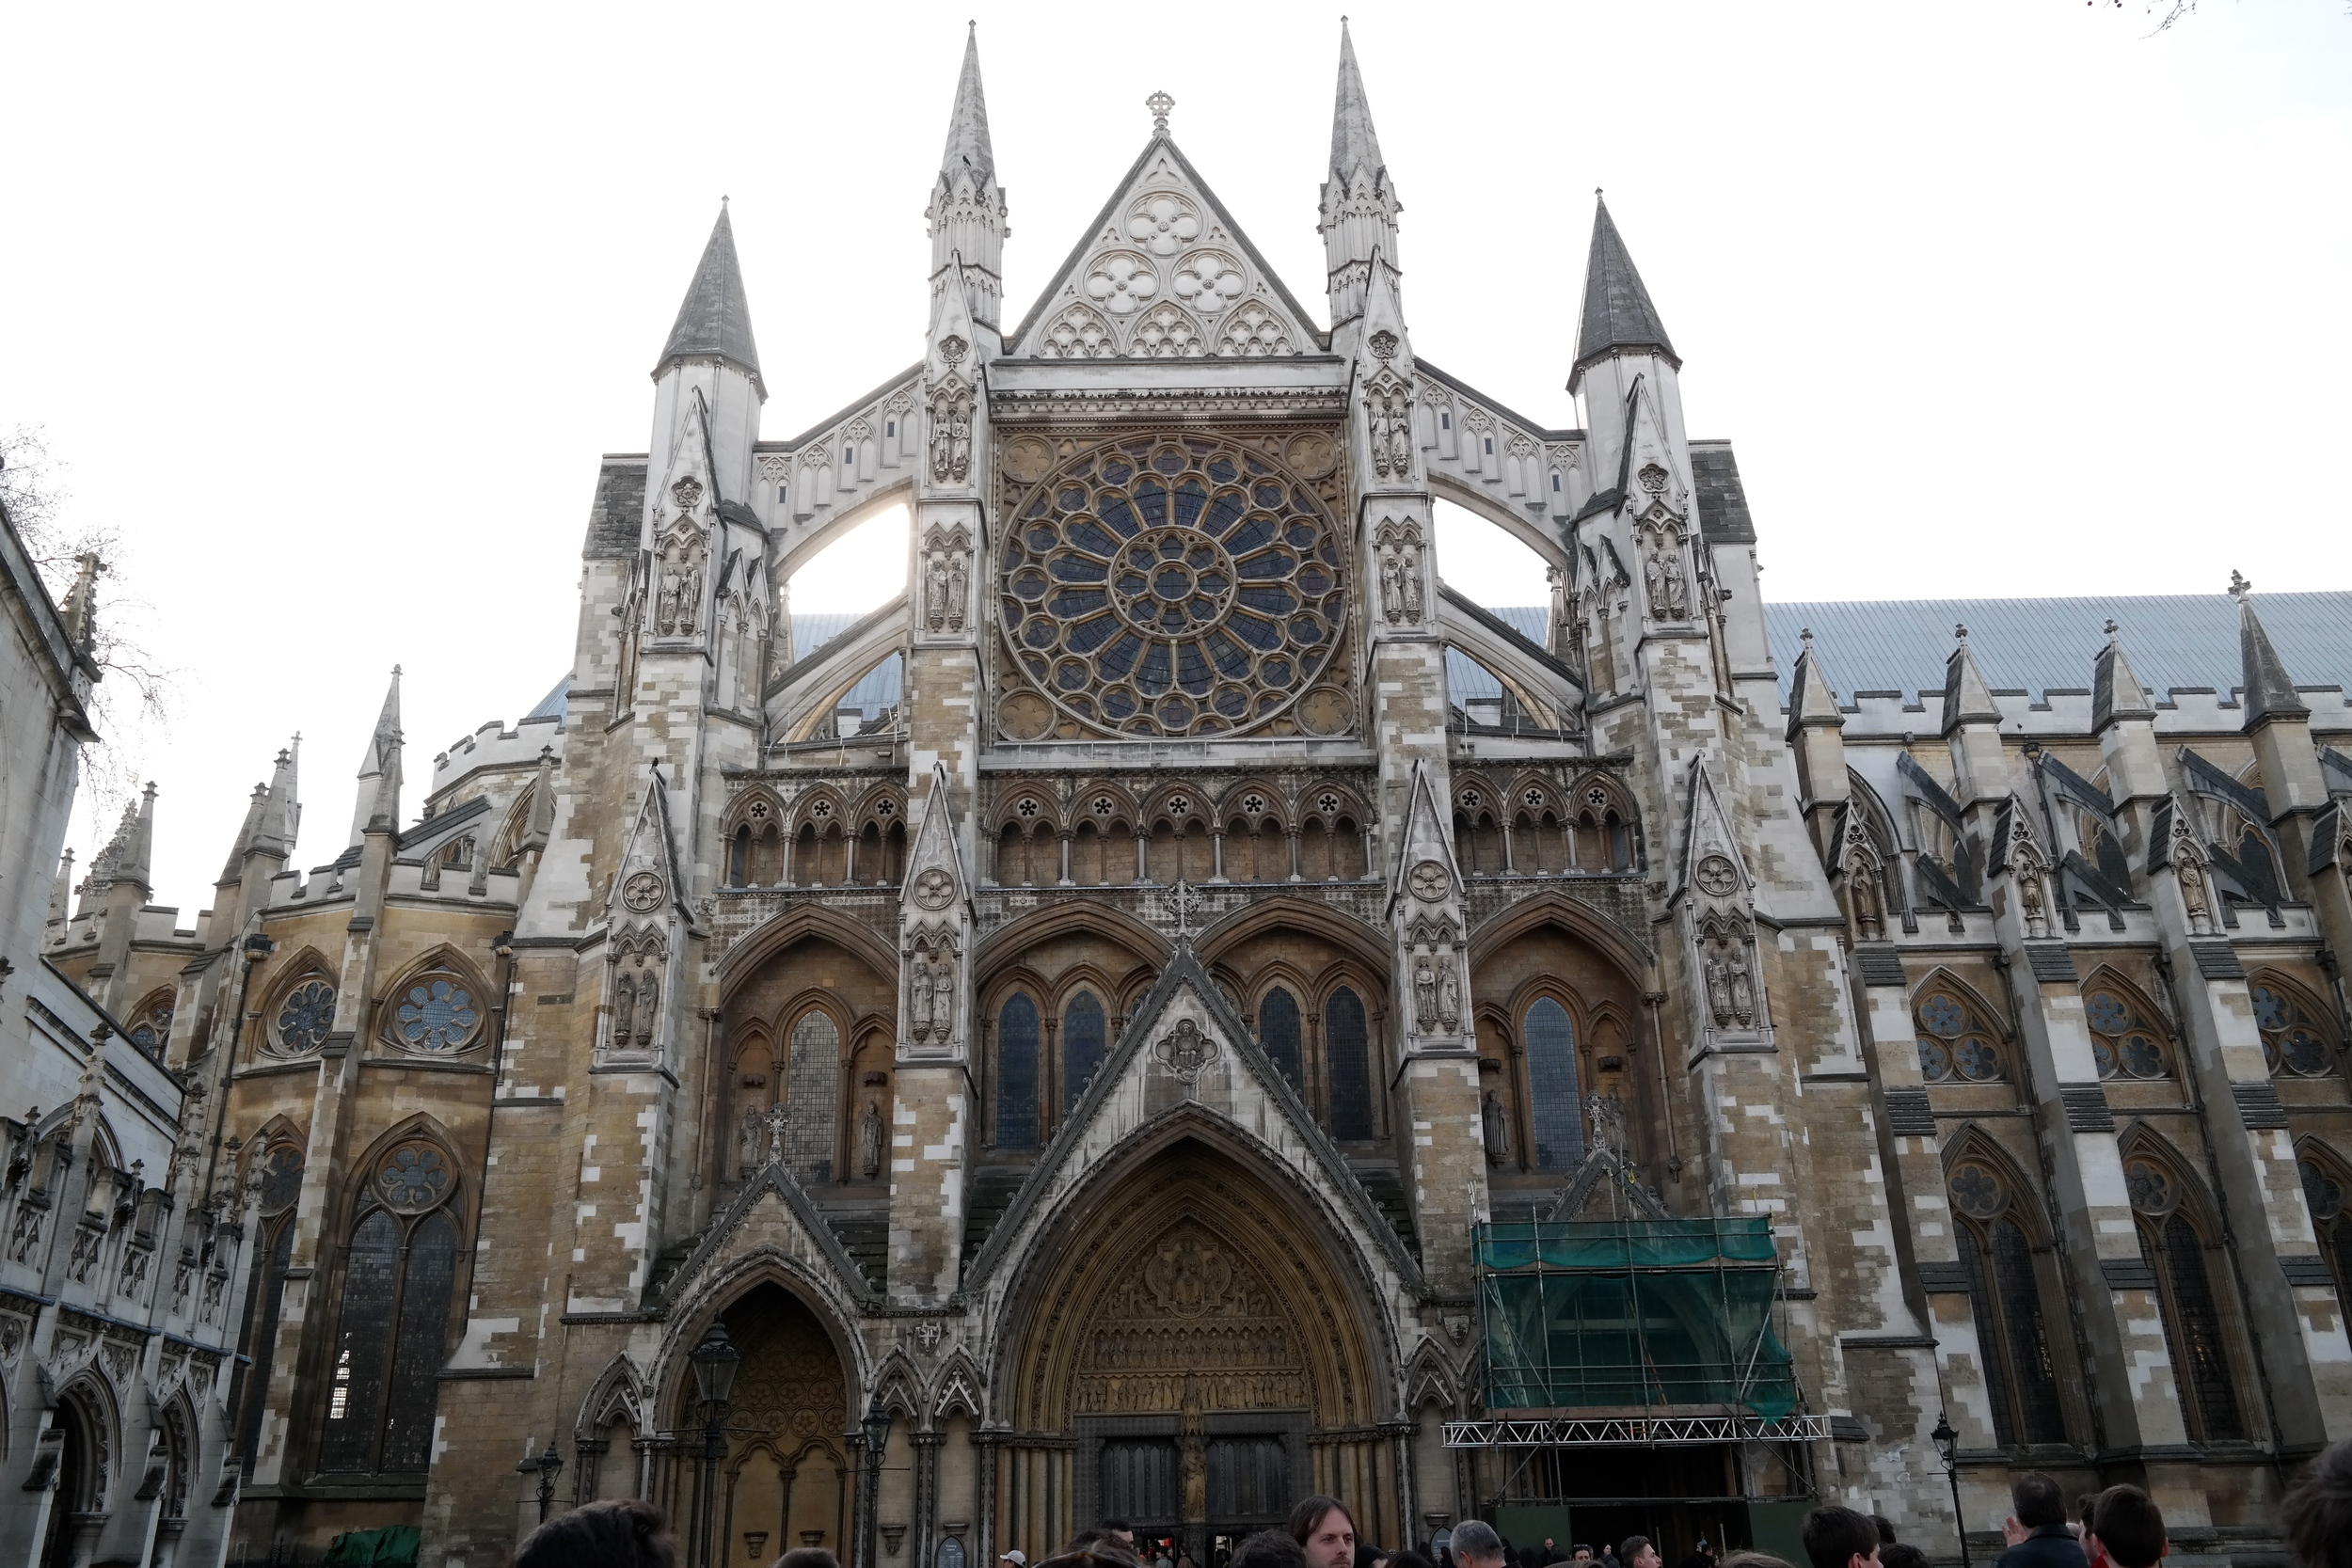 Westminster Abbey: You must sell them your firstborn for a ticket to enter, but it's worth it.